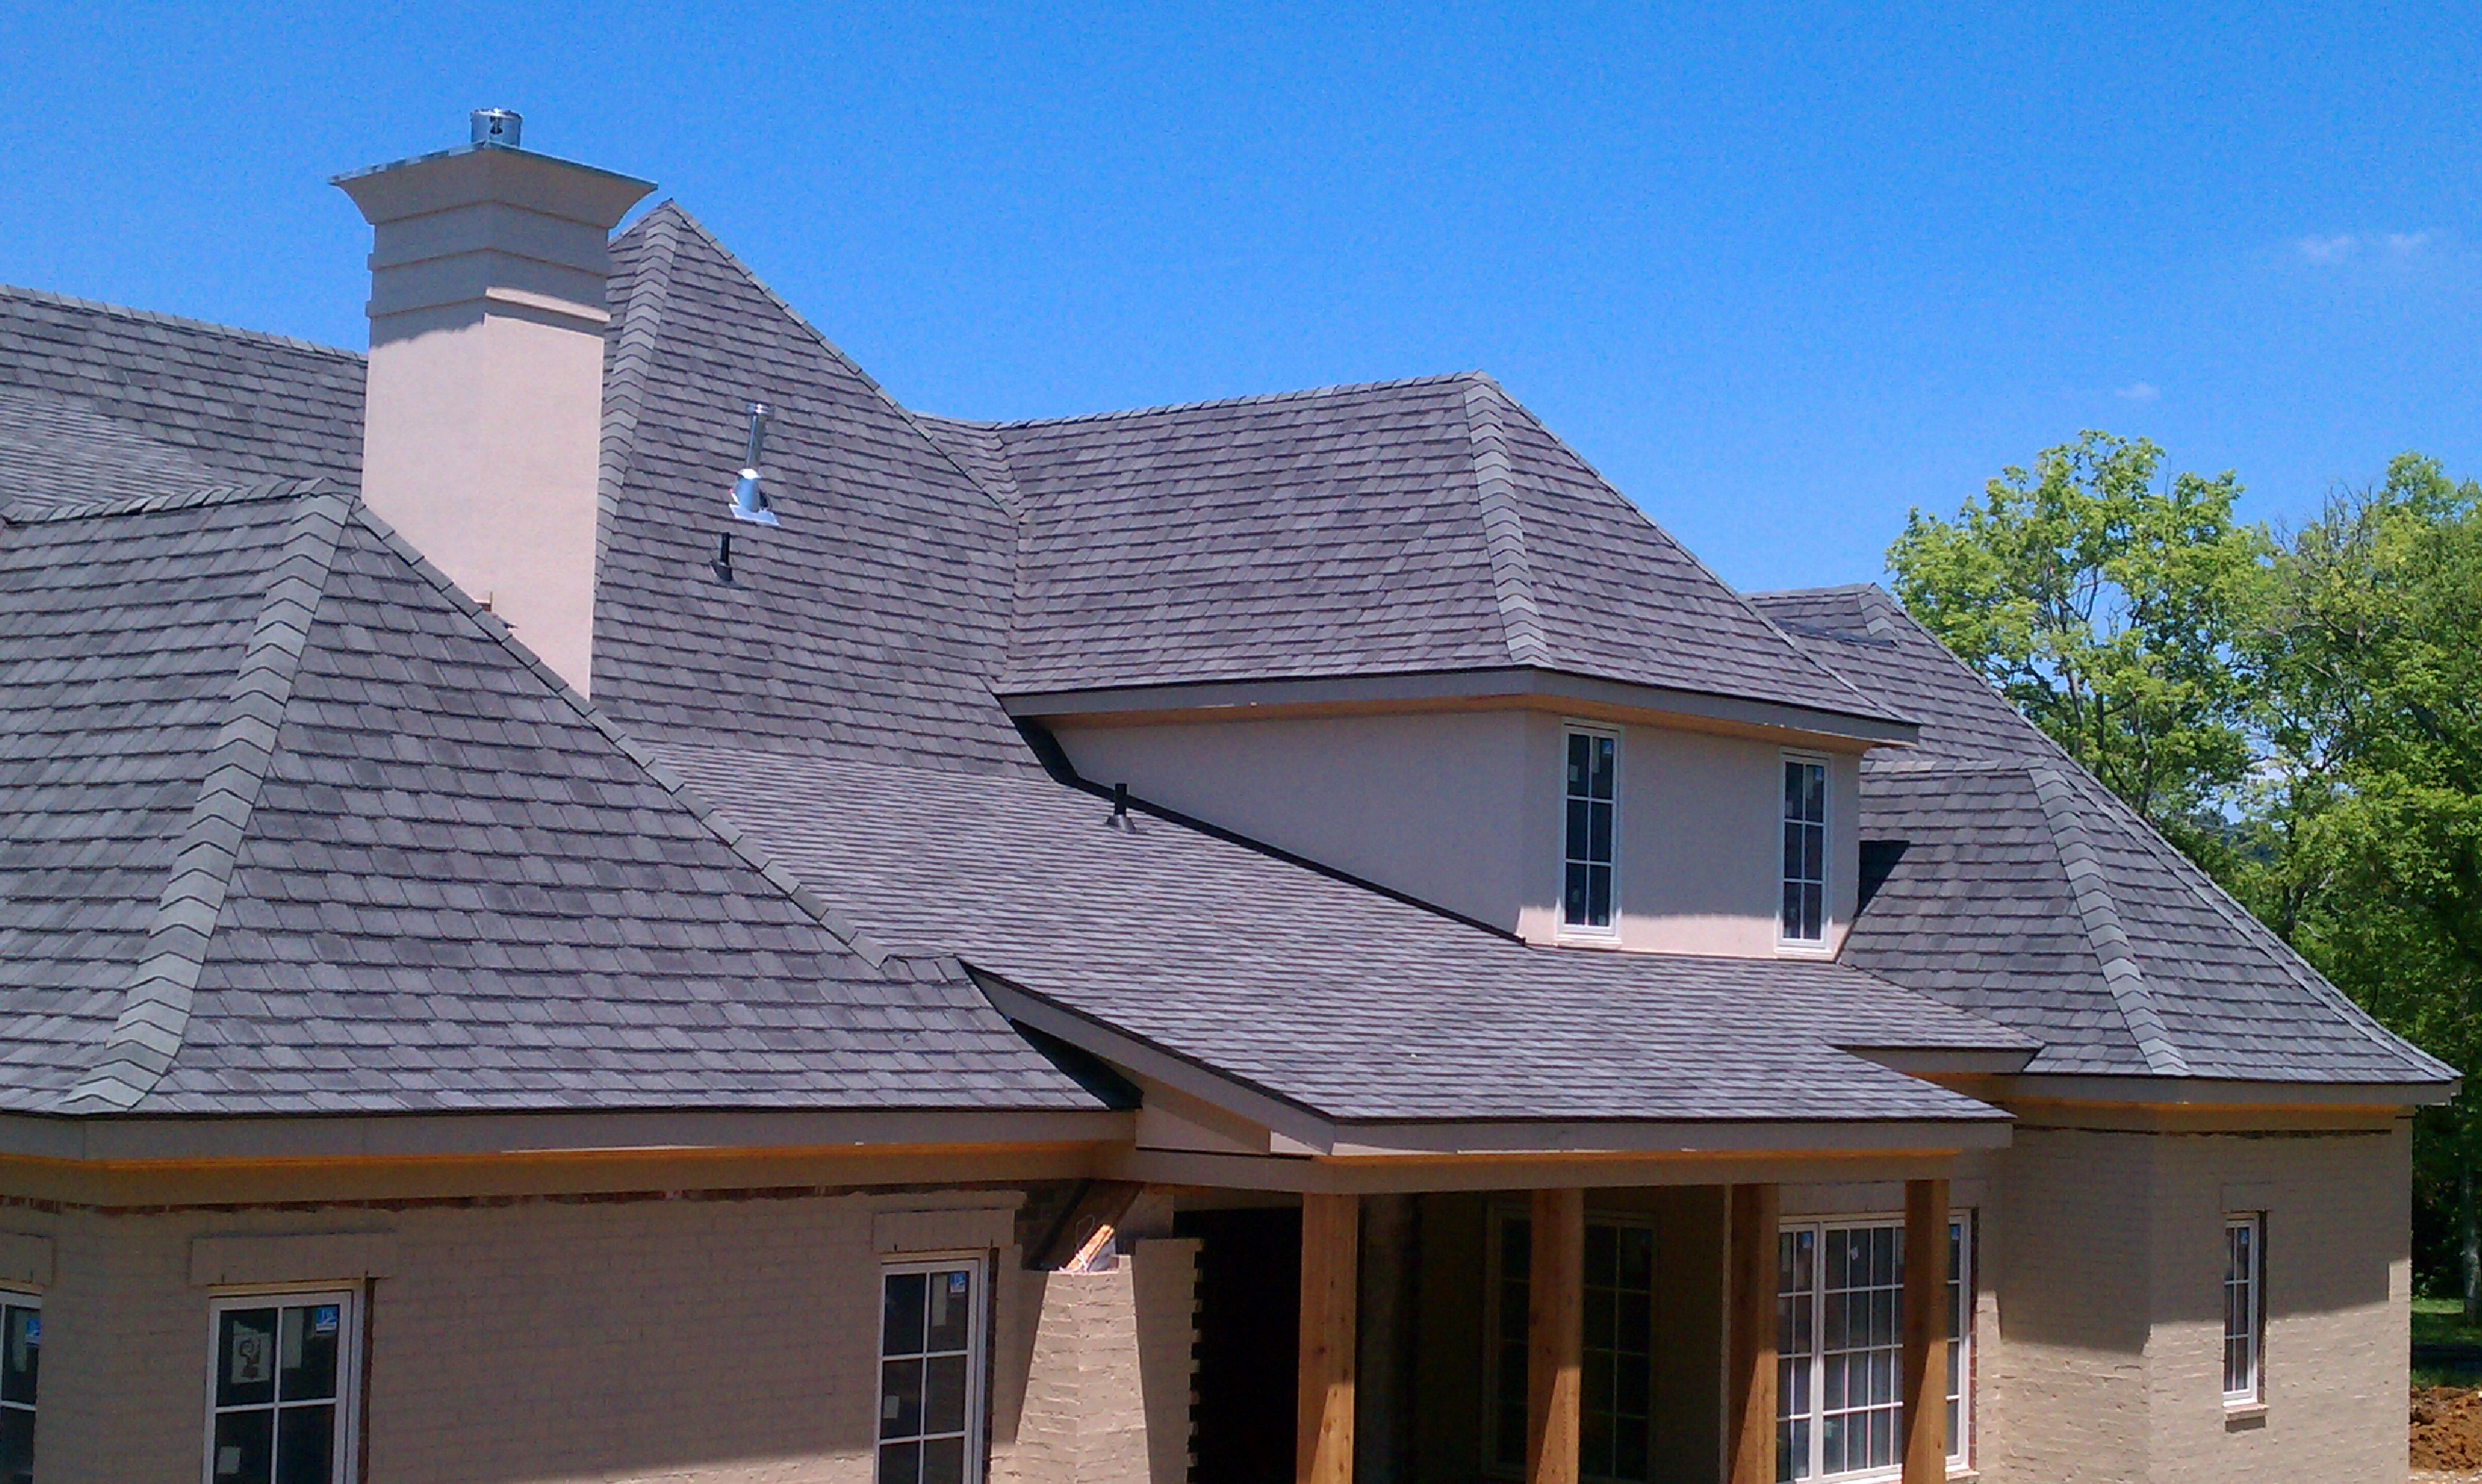 Superb Roof Recognizing Castle Quality In The Southern